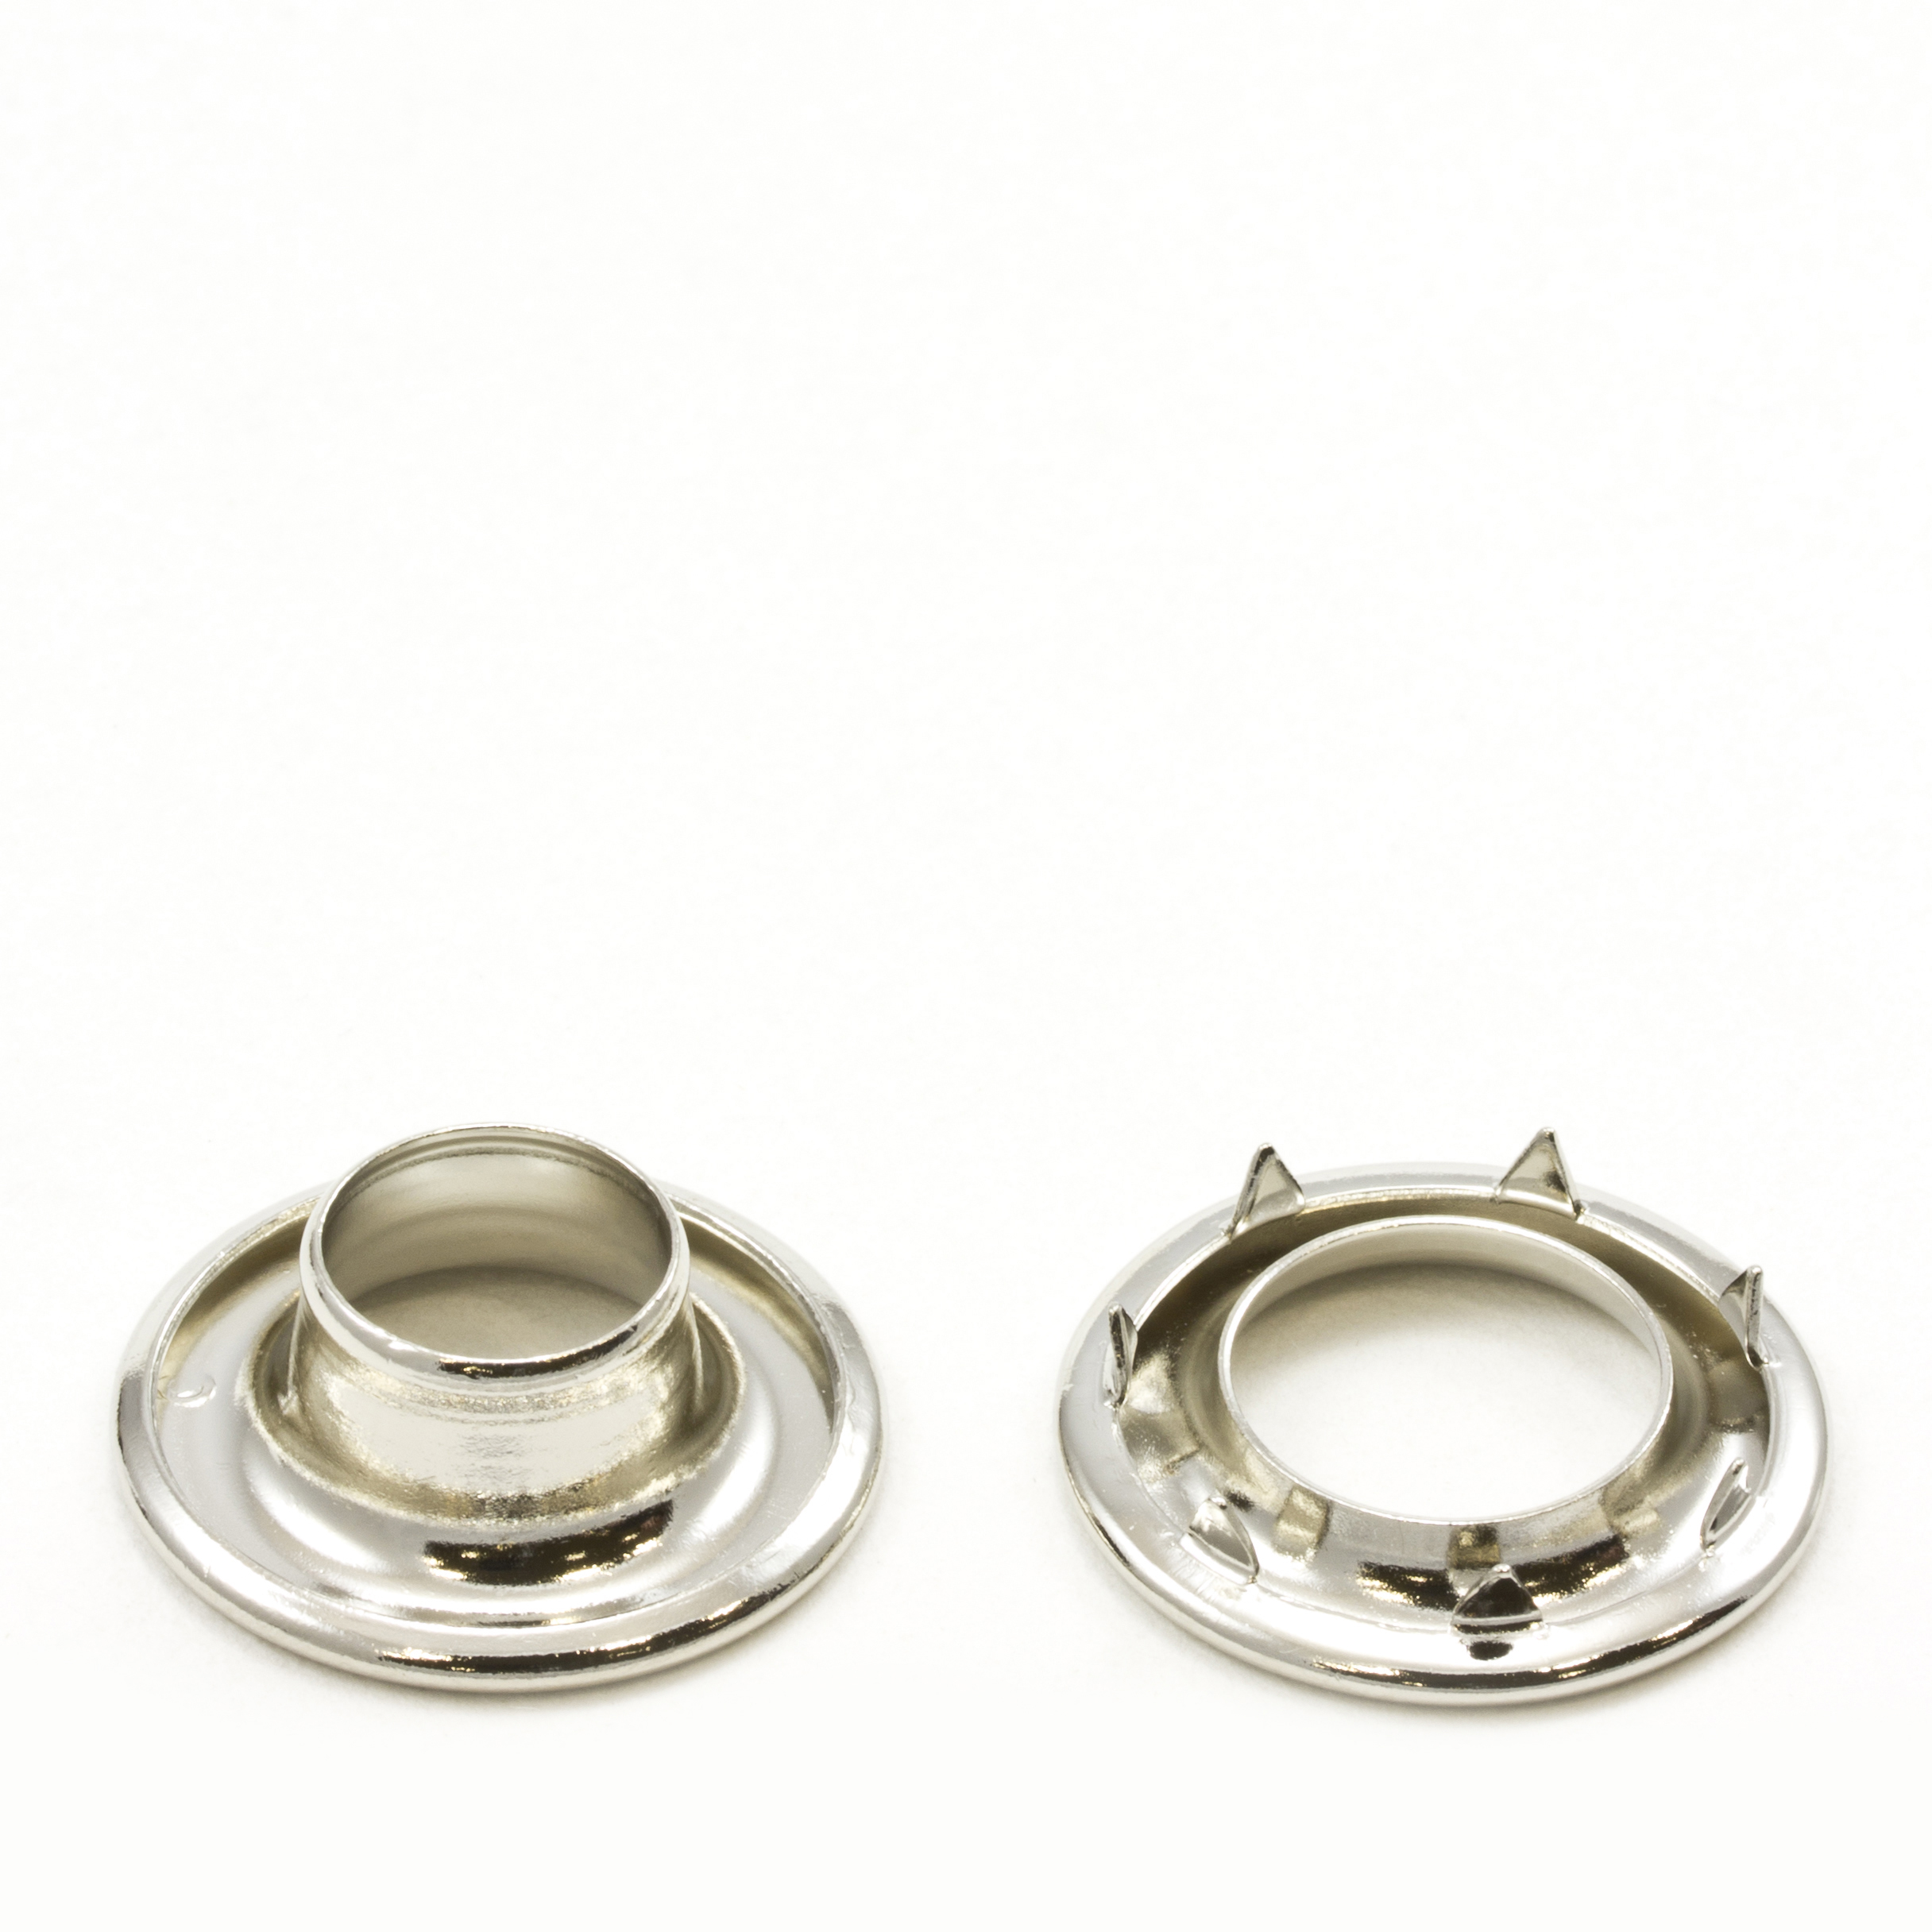 Rolled Rim Grommet with Spur Washer #3 Brass Nickel Plated 15/32